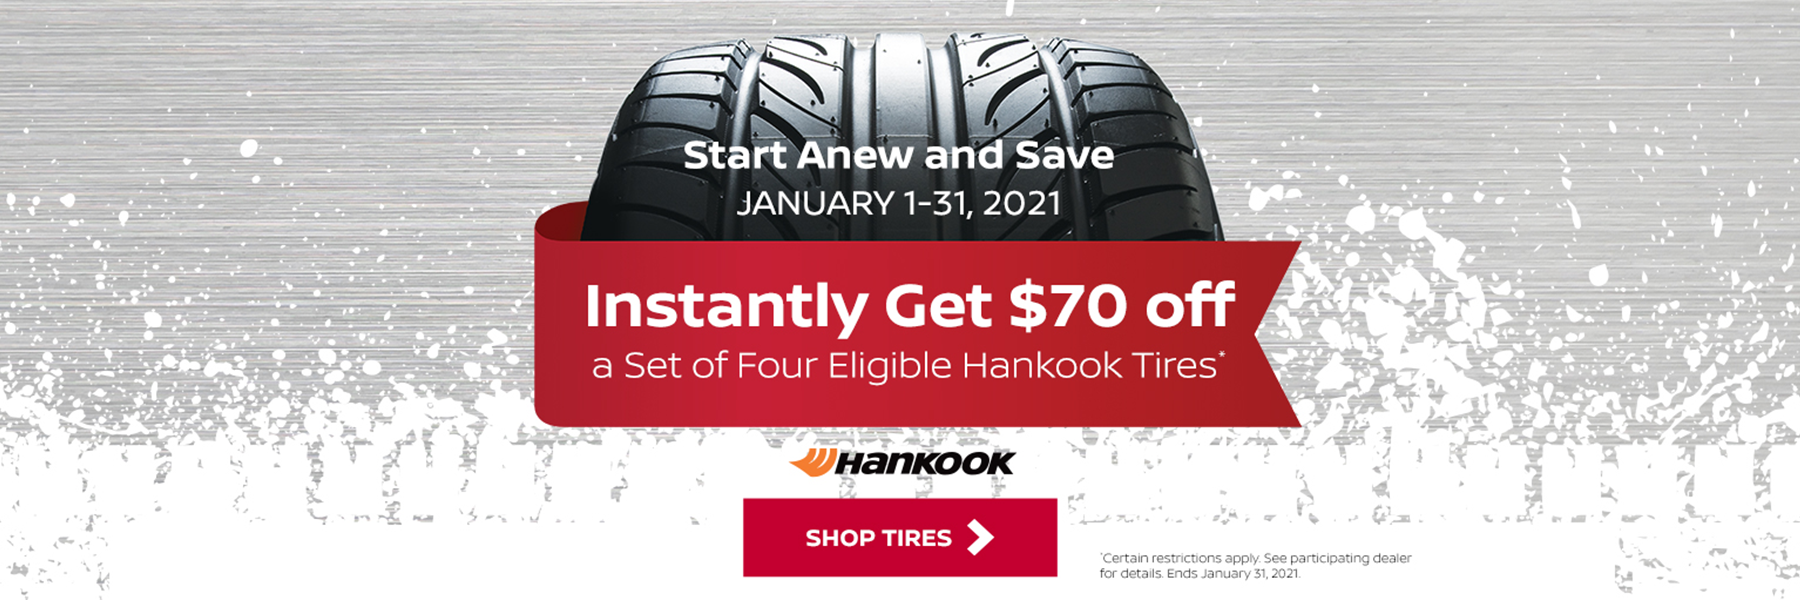 Hankook $70 Rebate - Empire Lakewood Nissan